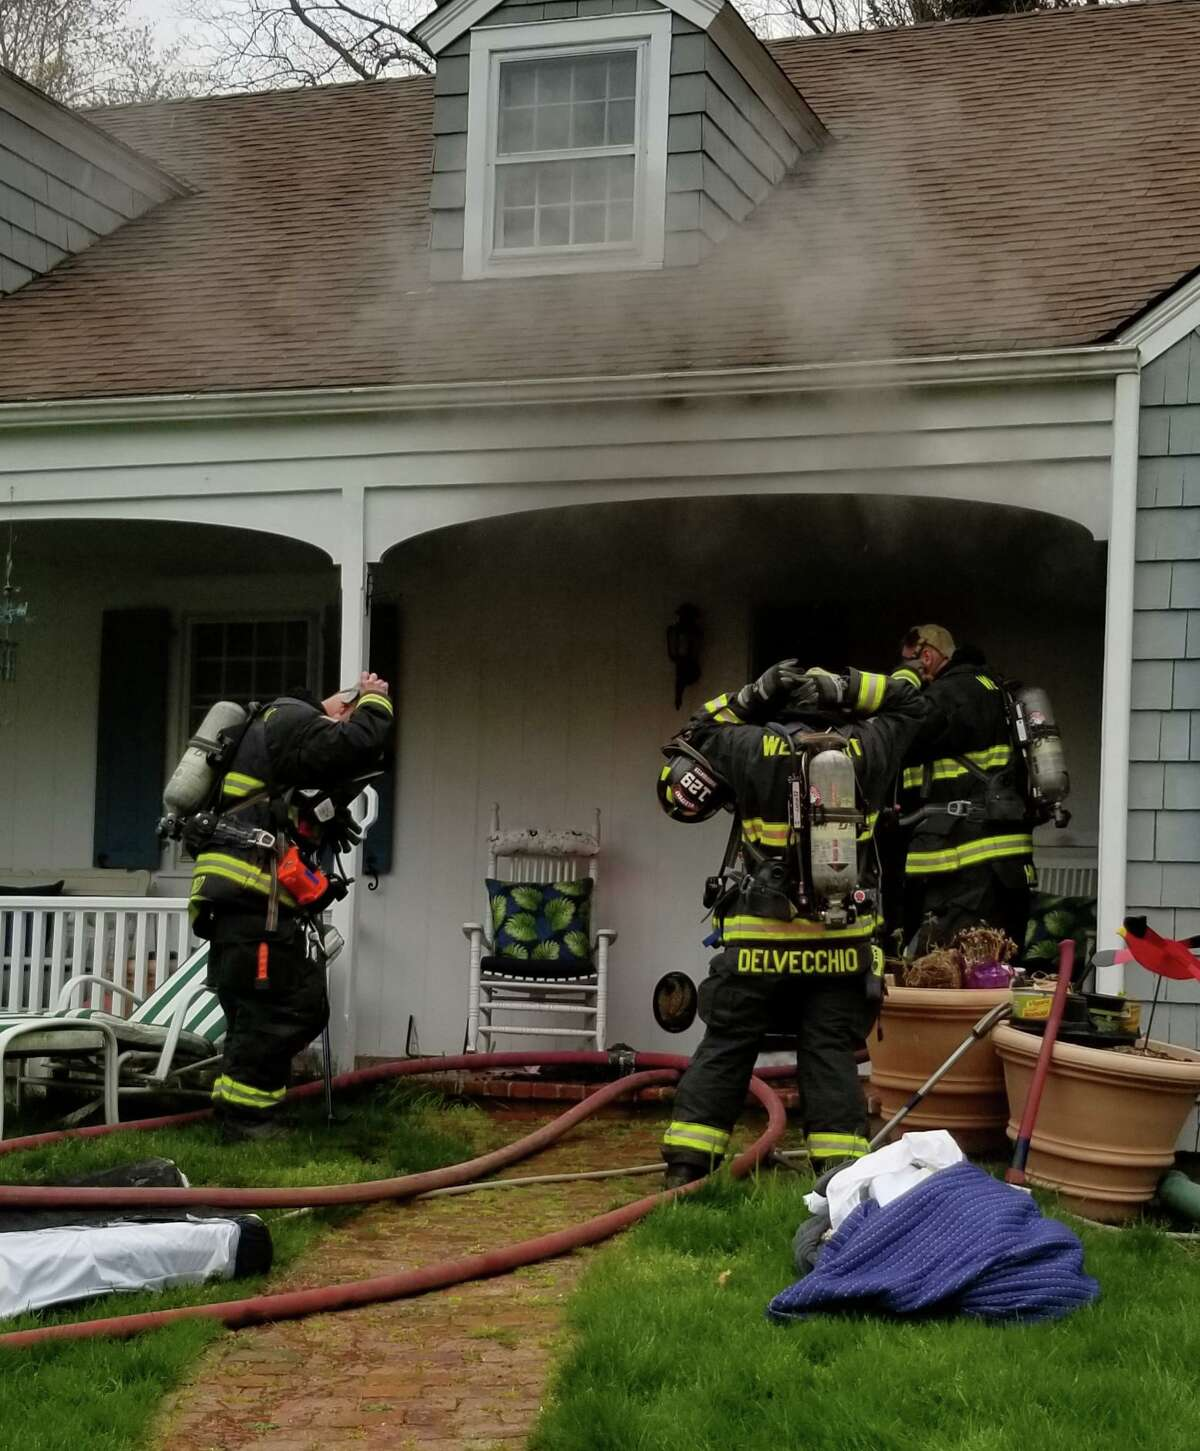 Crews on scene for a fire on Marilane in Westport, Conn., on Wednesday, April 29, 2020.